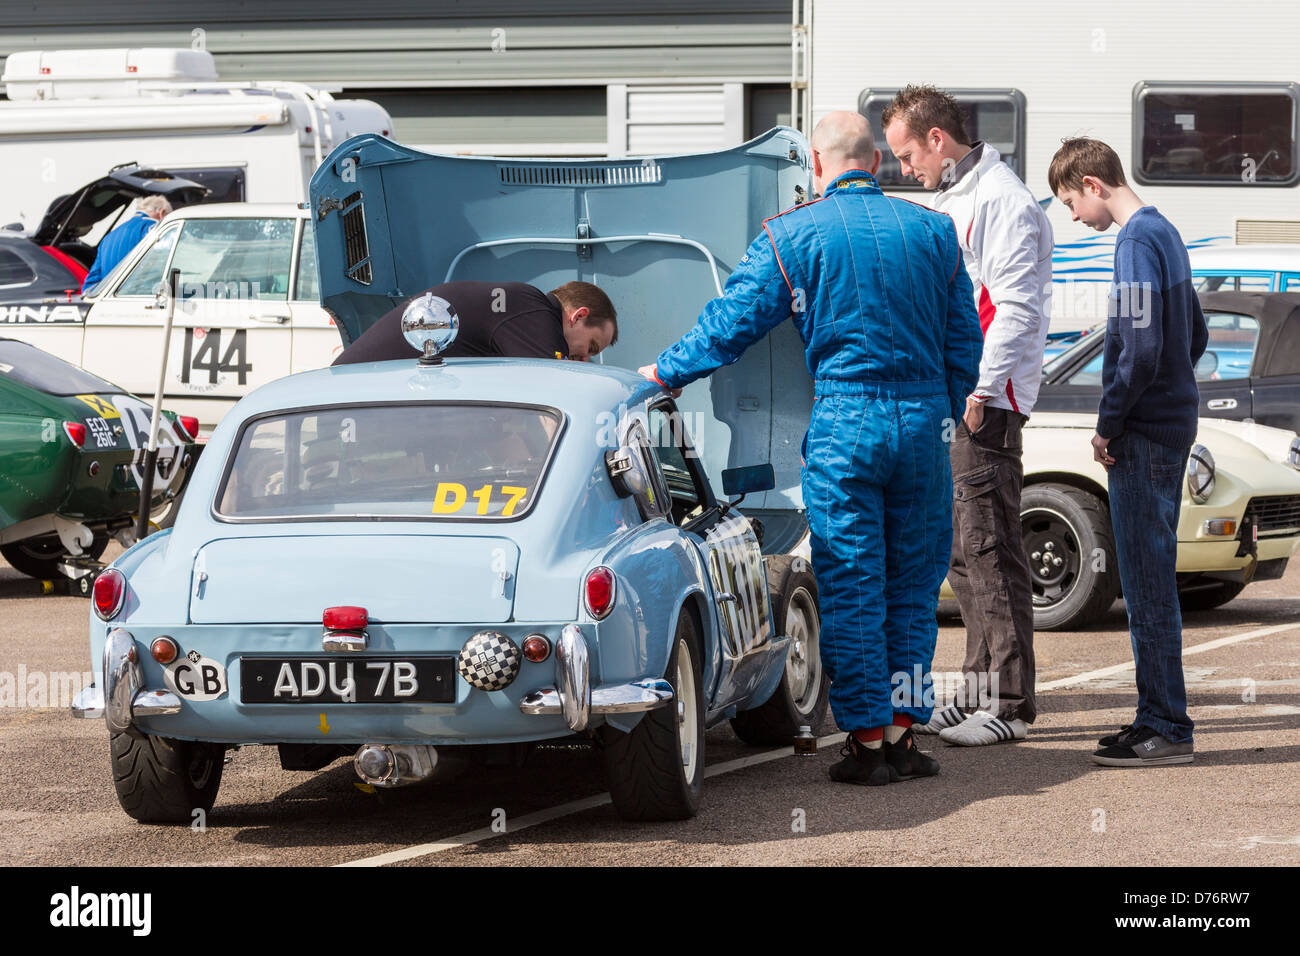 1964 Triumph Spitfire Mk1 Undergoes Preparations In The Paddock At